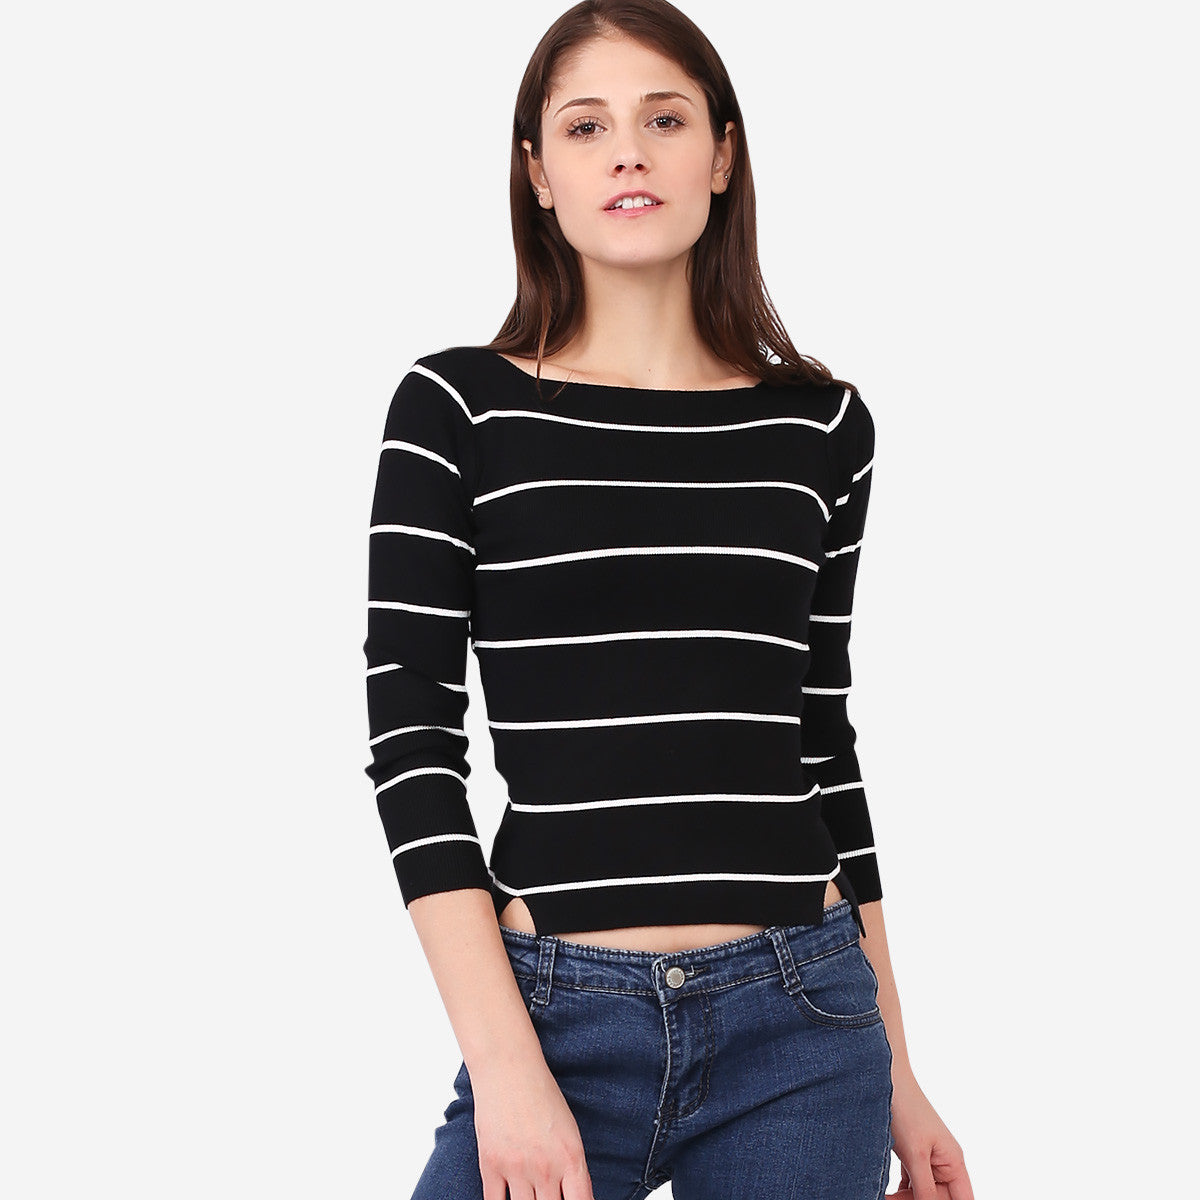 Black Boatneck Striped Knit Top